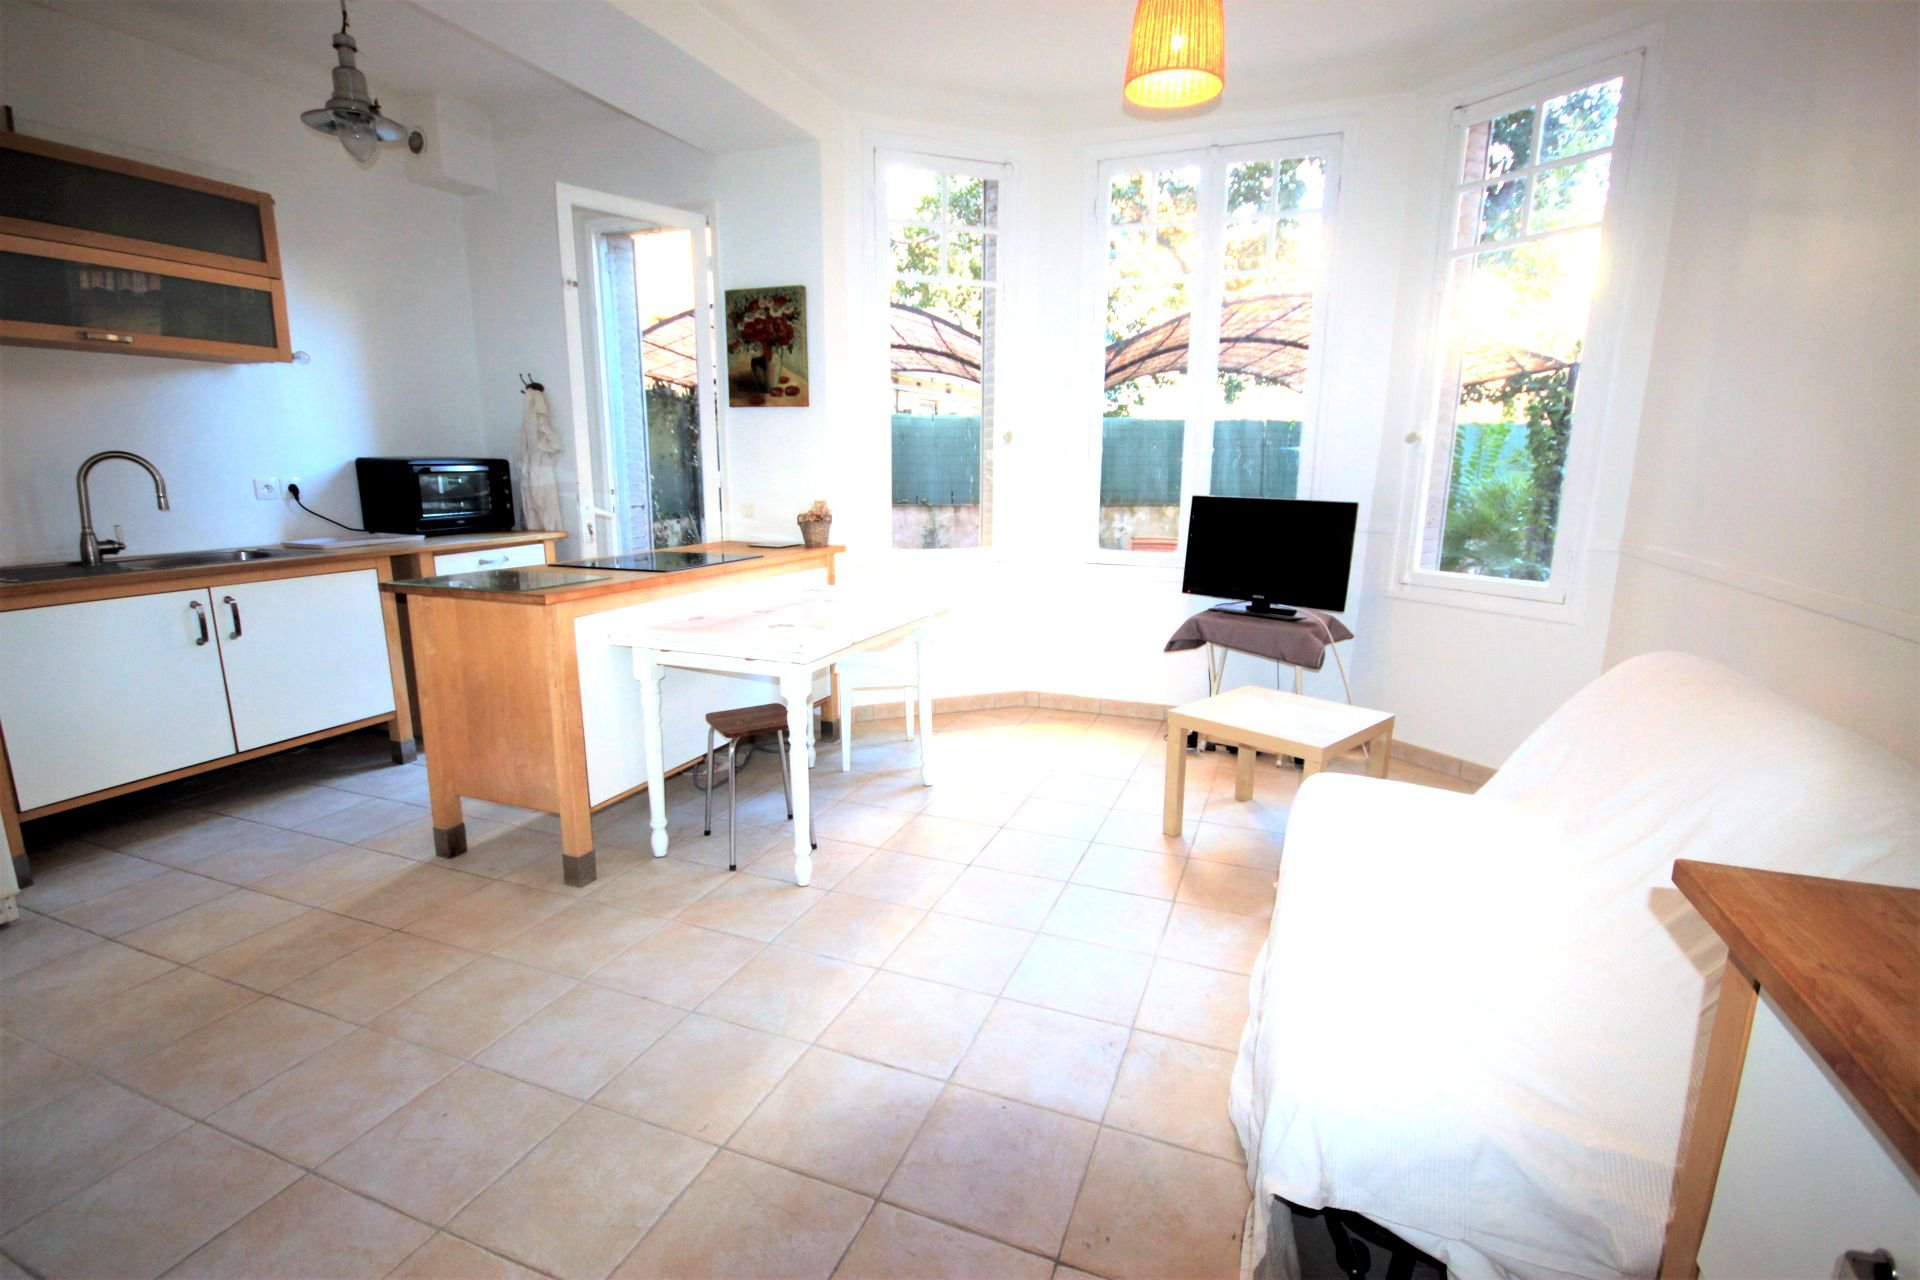 AJC IMMOBILIER offers in Cannes Prado in Exclusivity, vast 4 rooms in ground floor in absolute calm ...